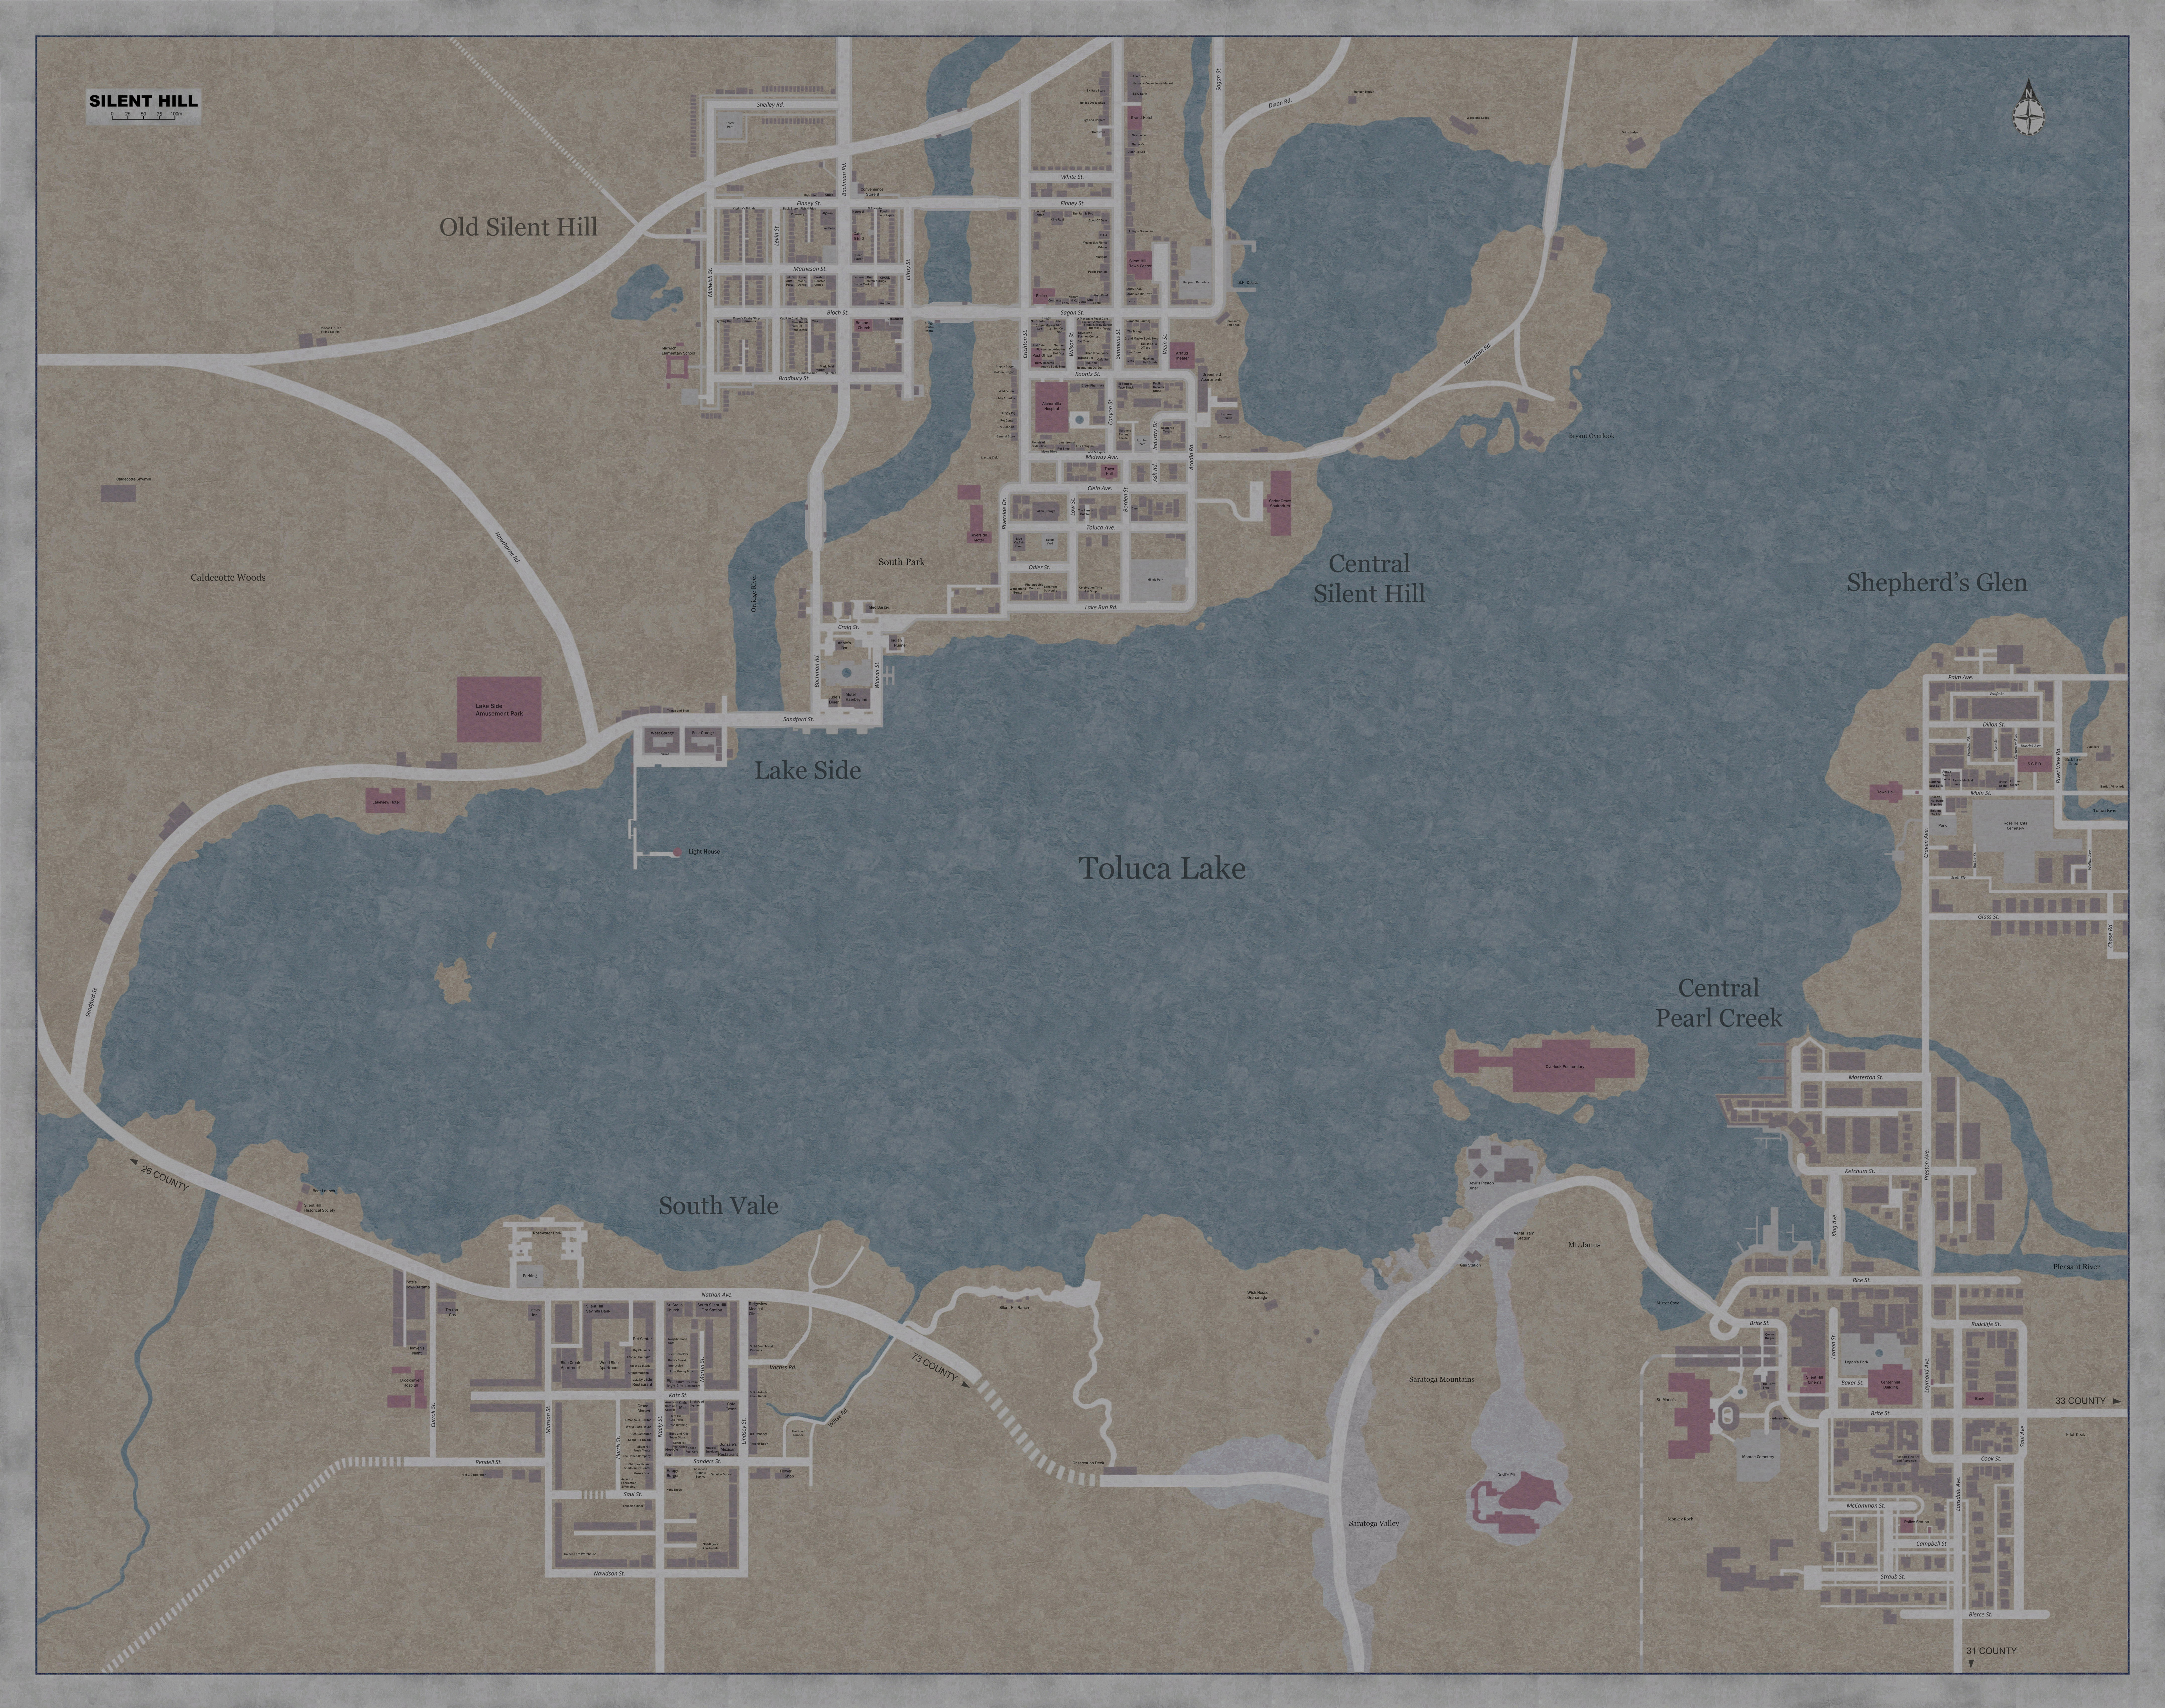 Could This Be The Full Map Of The Town Silenthill